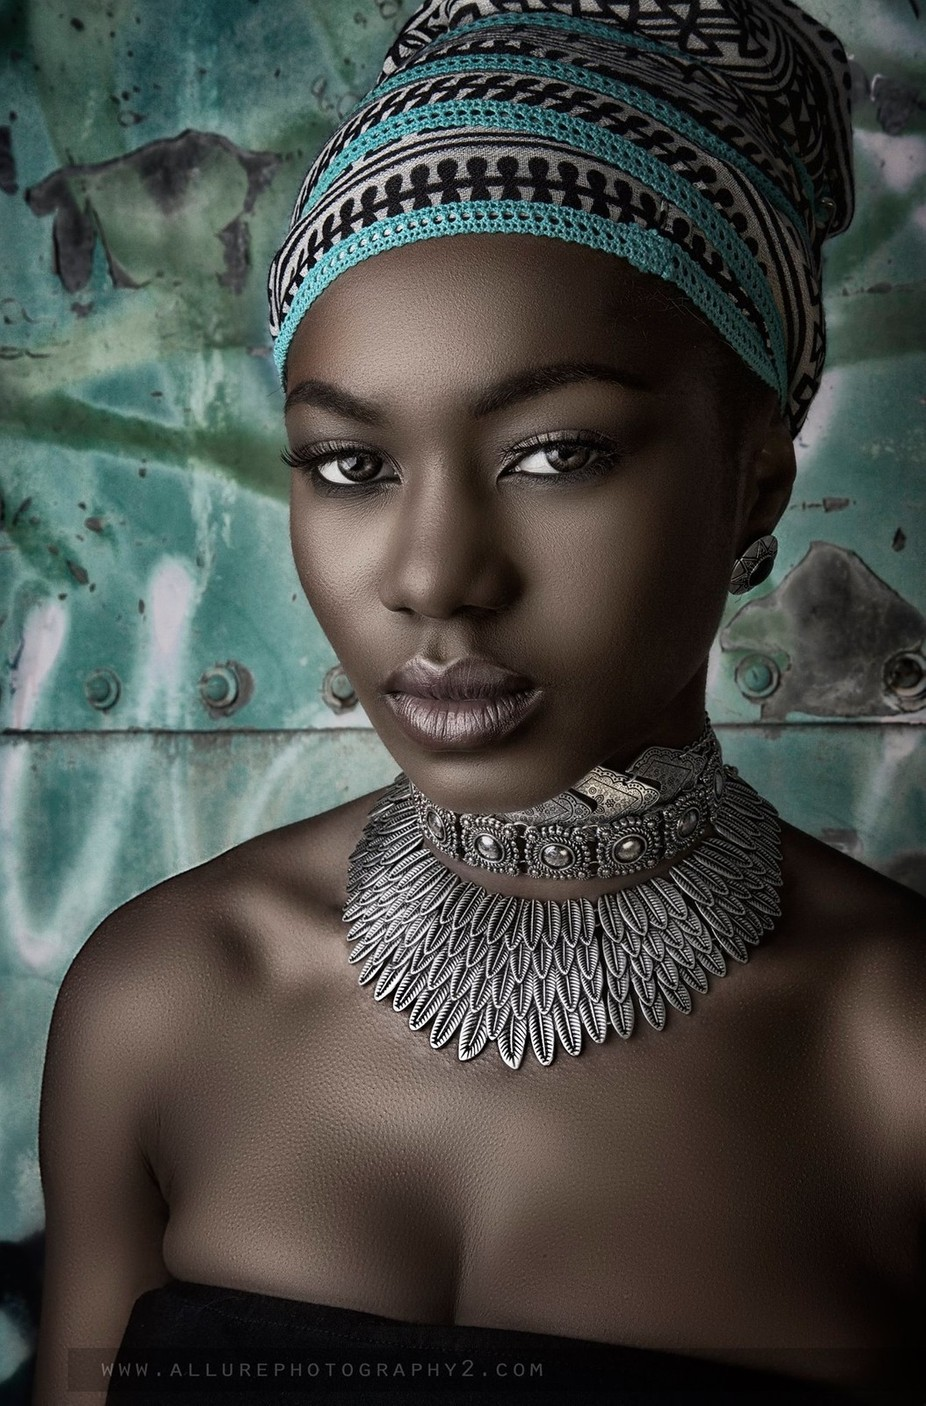 Africana by christophershiels - Anything People Photo Contest